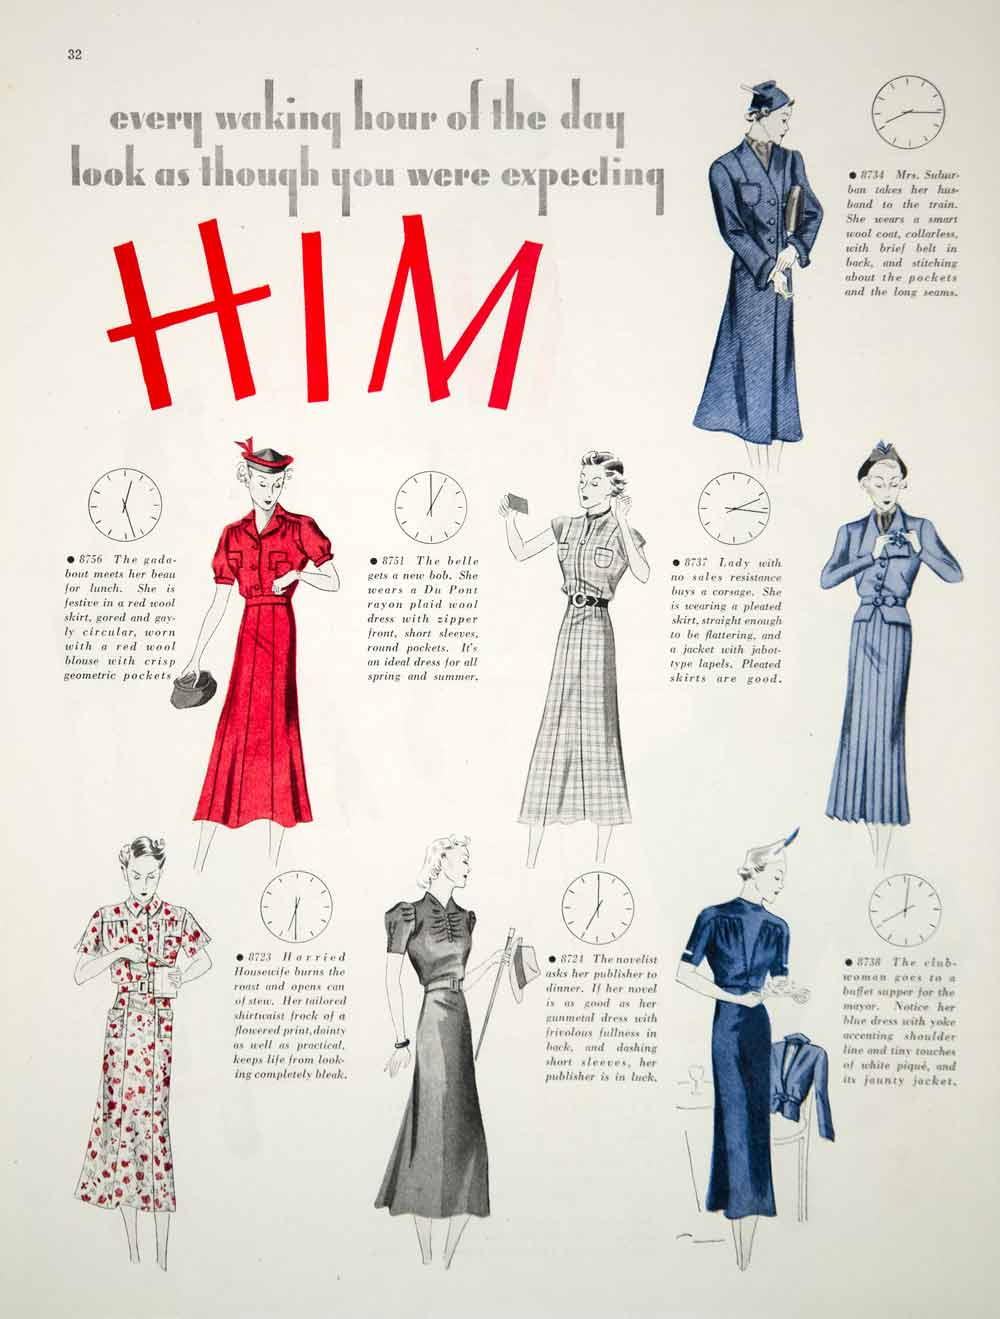 1937 Article Vintage 30's Fashion Women Housewife Dress Suit Career Girl Sexism